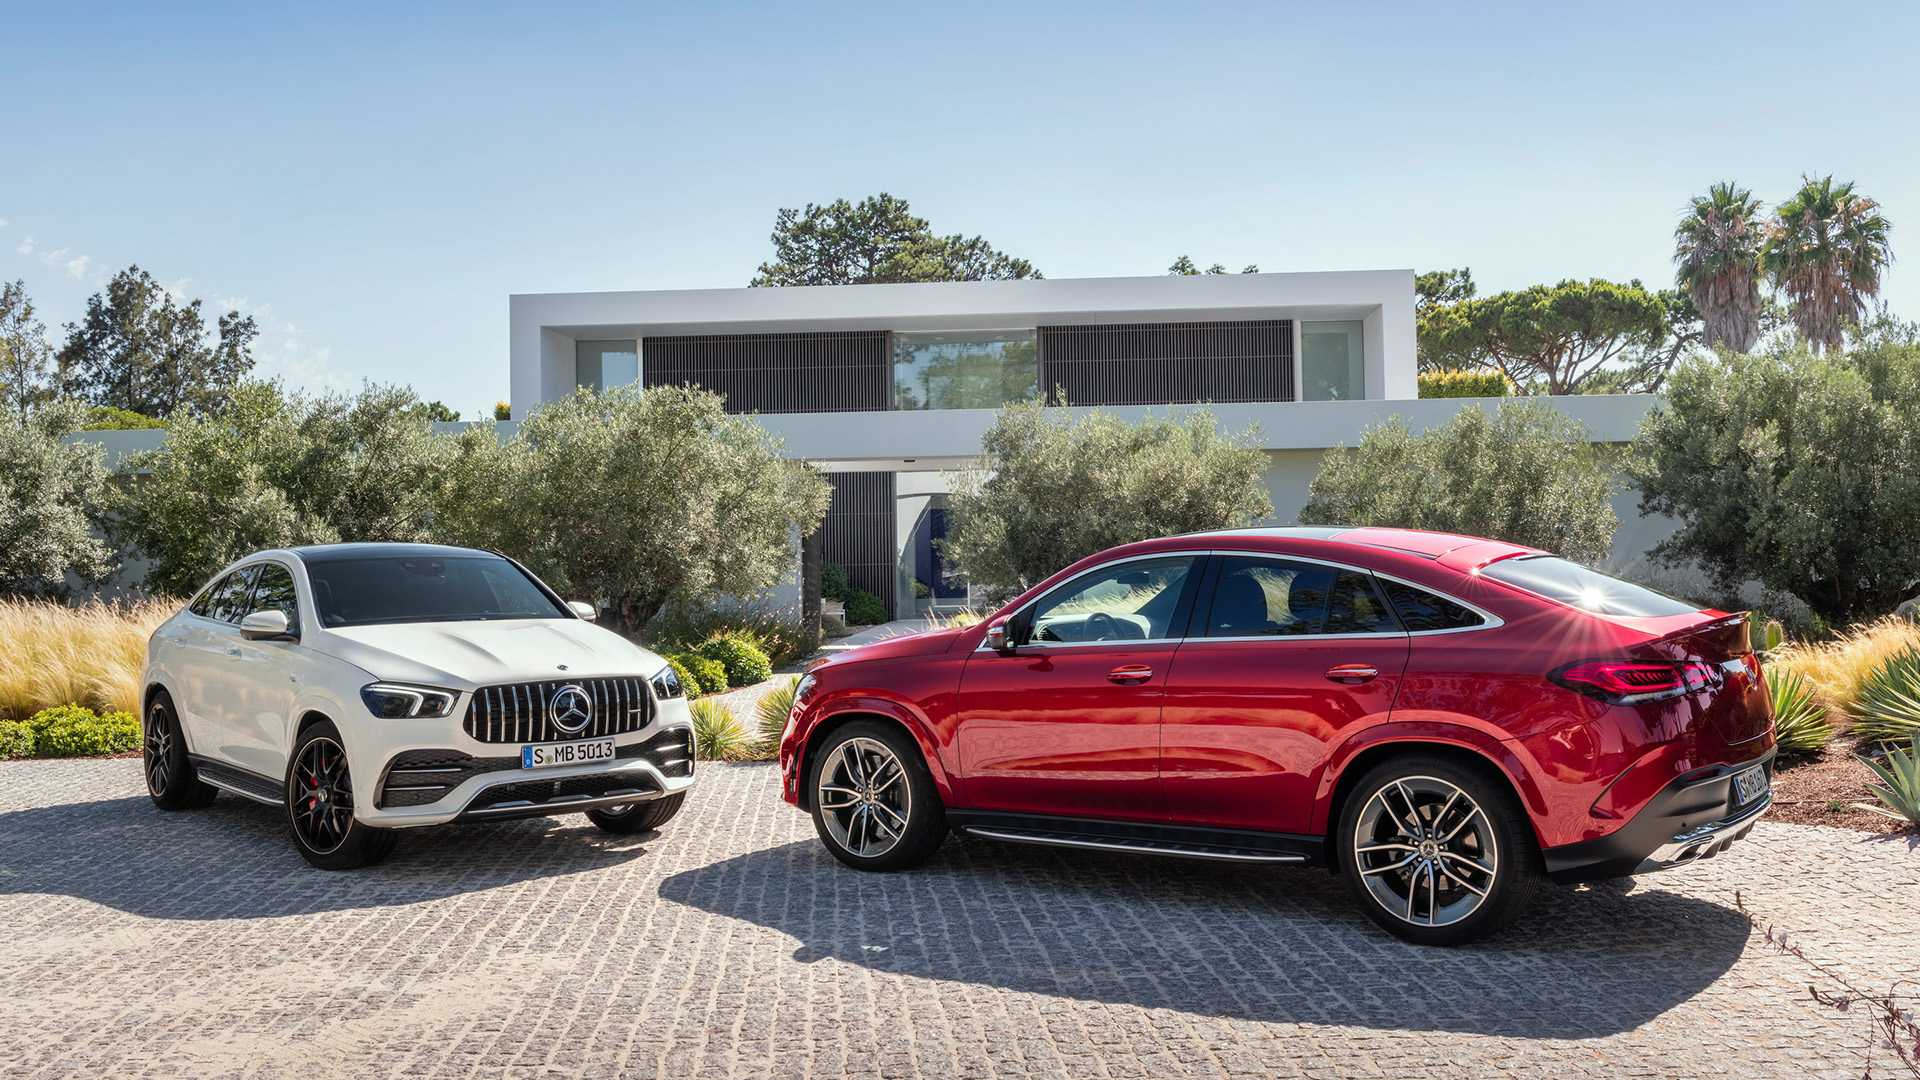 2021 Mercedes-Benz GLE Coupe and GLE 53 AMG Coupe Wallpapers (9)